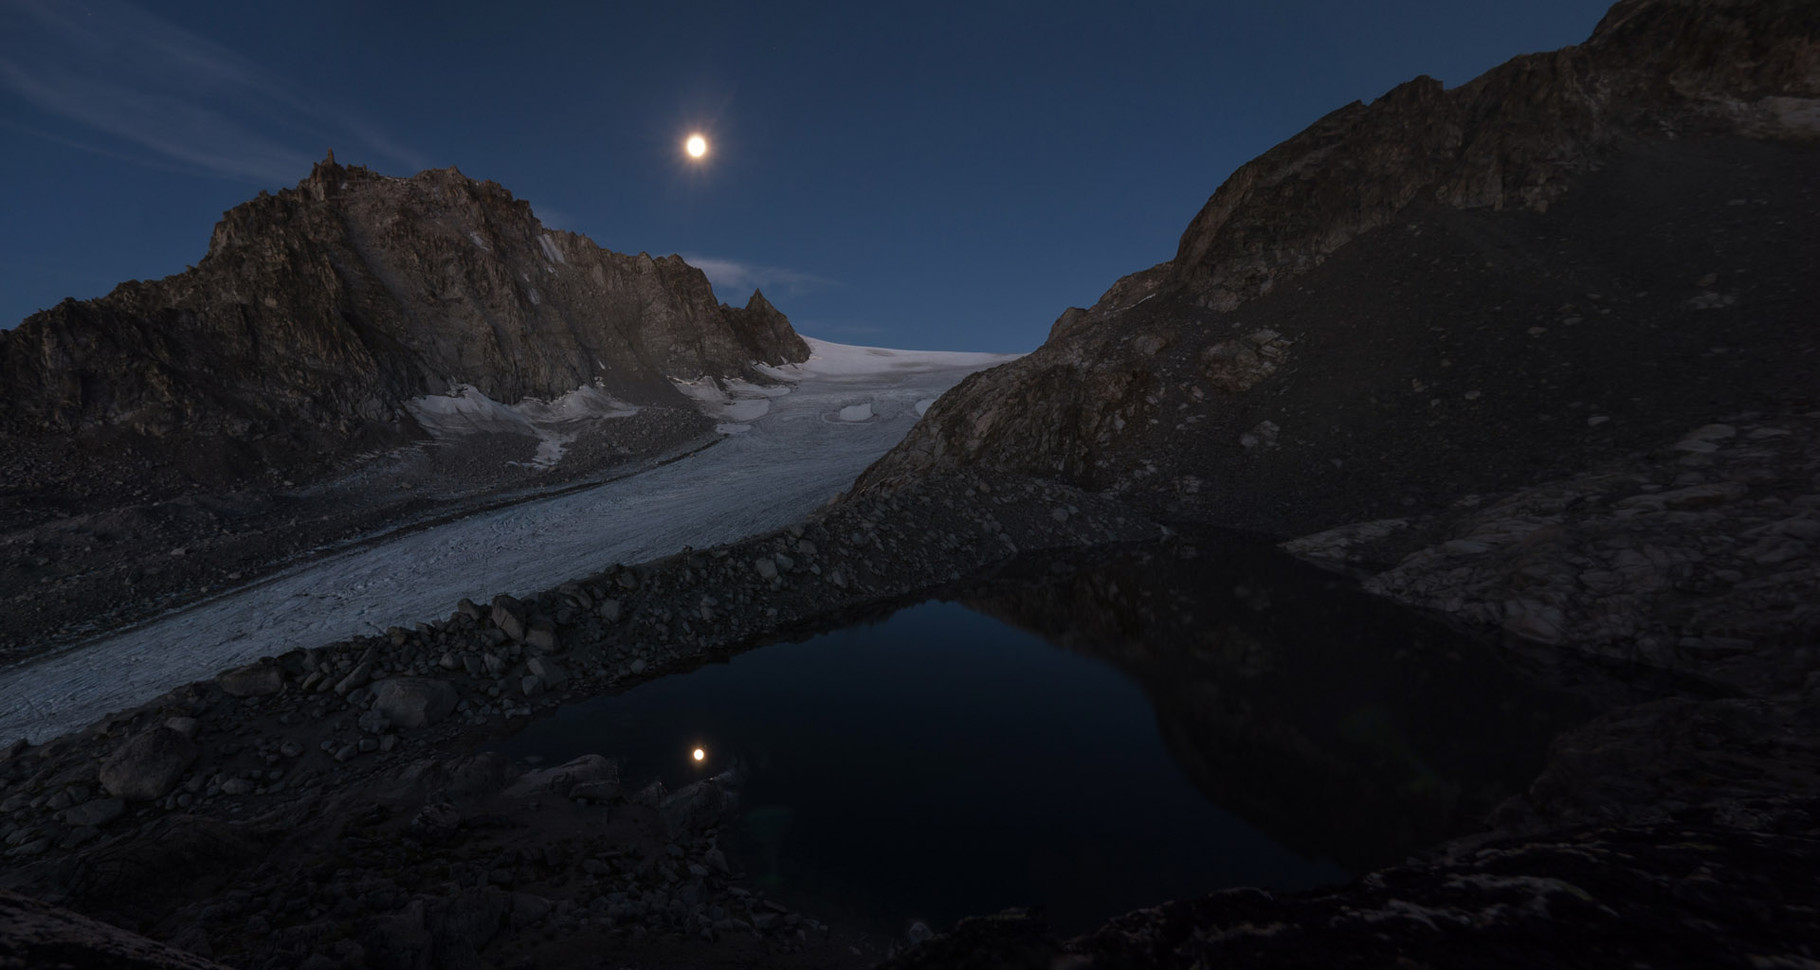 Full moon at Glacier d'Orny, view from SAC hut Cabane d'Orny